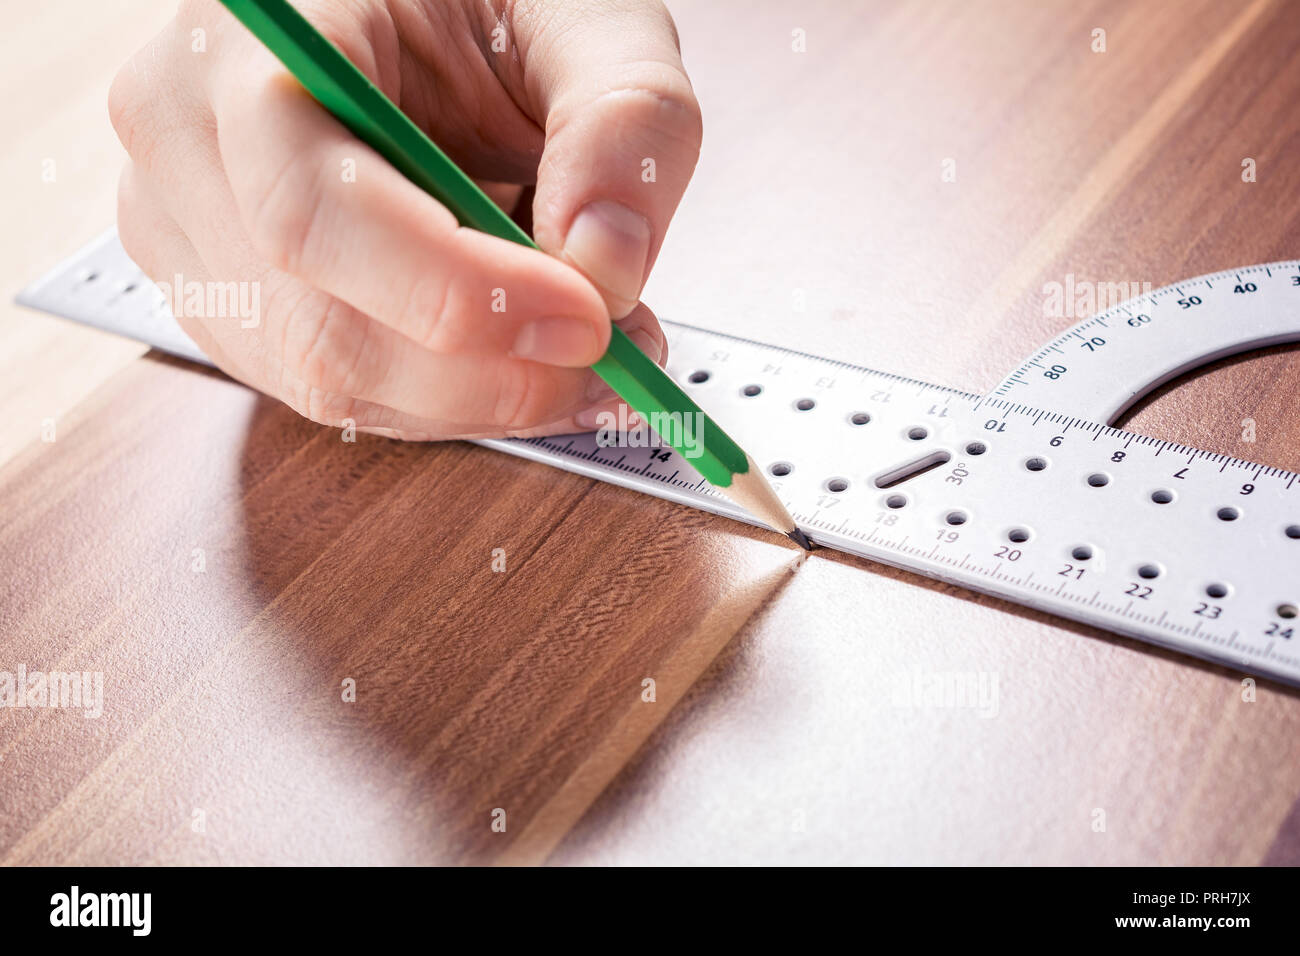 Right Angle Ruler Stock Photos Amp Right Angle Ruler Stock Images